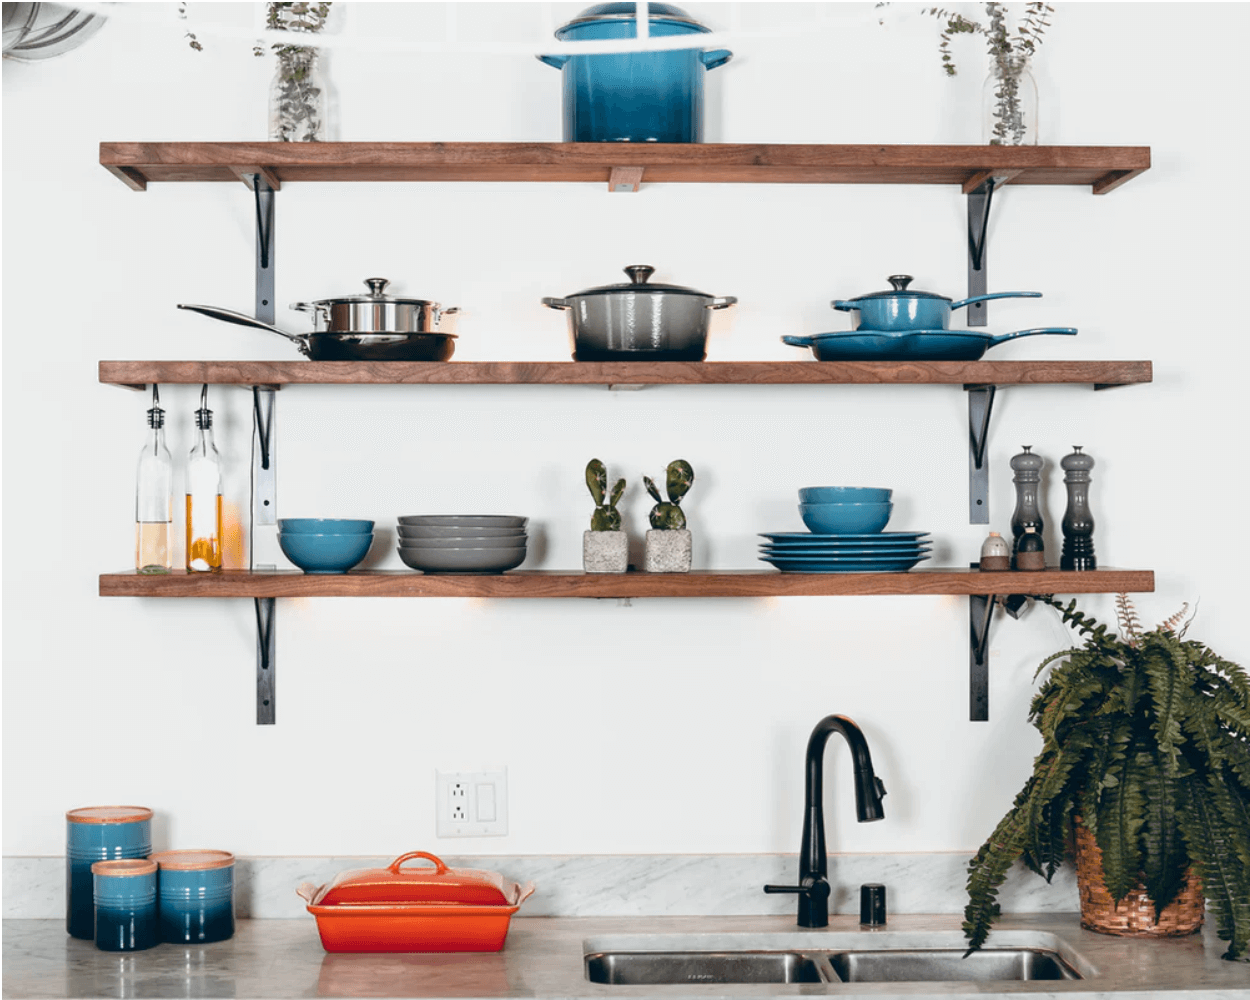 Reason Why You Might Want to Use Ceramic Cookware